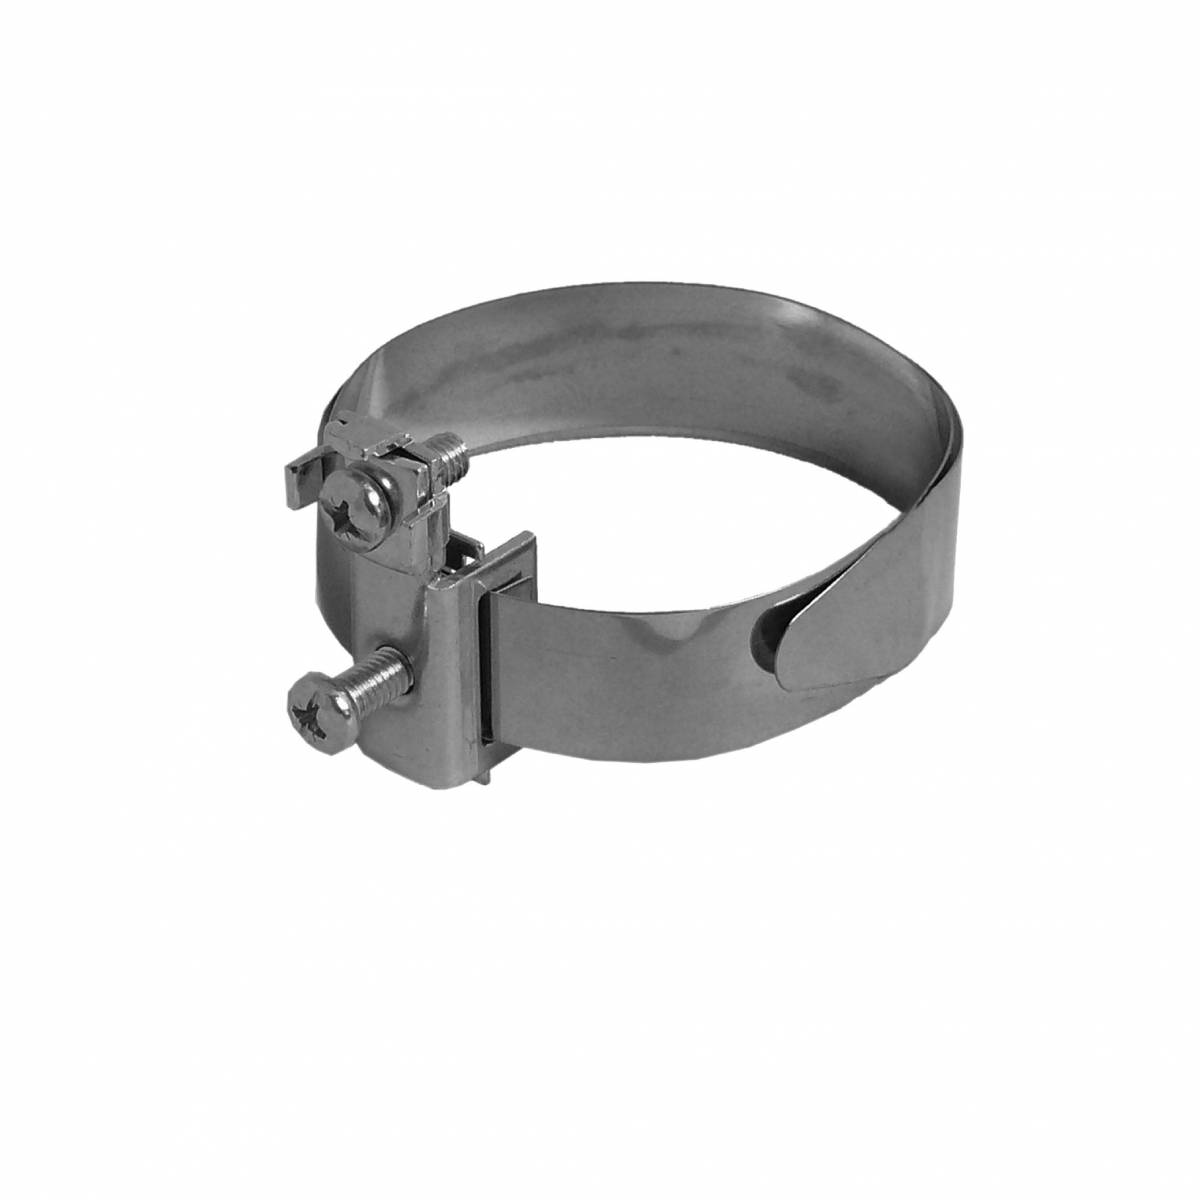 SAT Mast Earthing clamp for mast diameter to 100mm, Steel